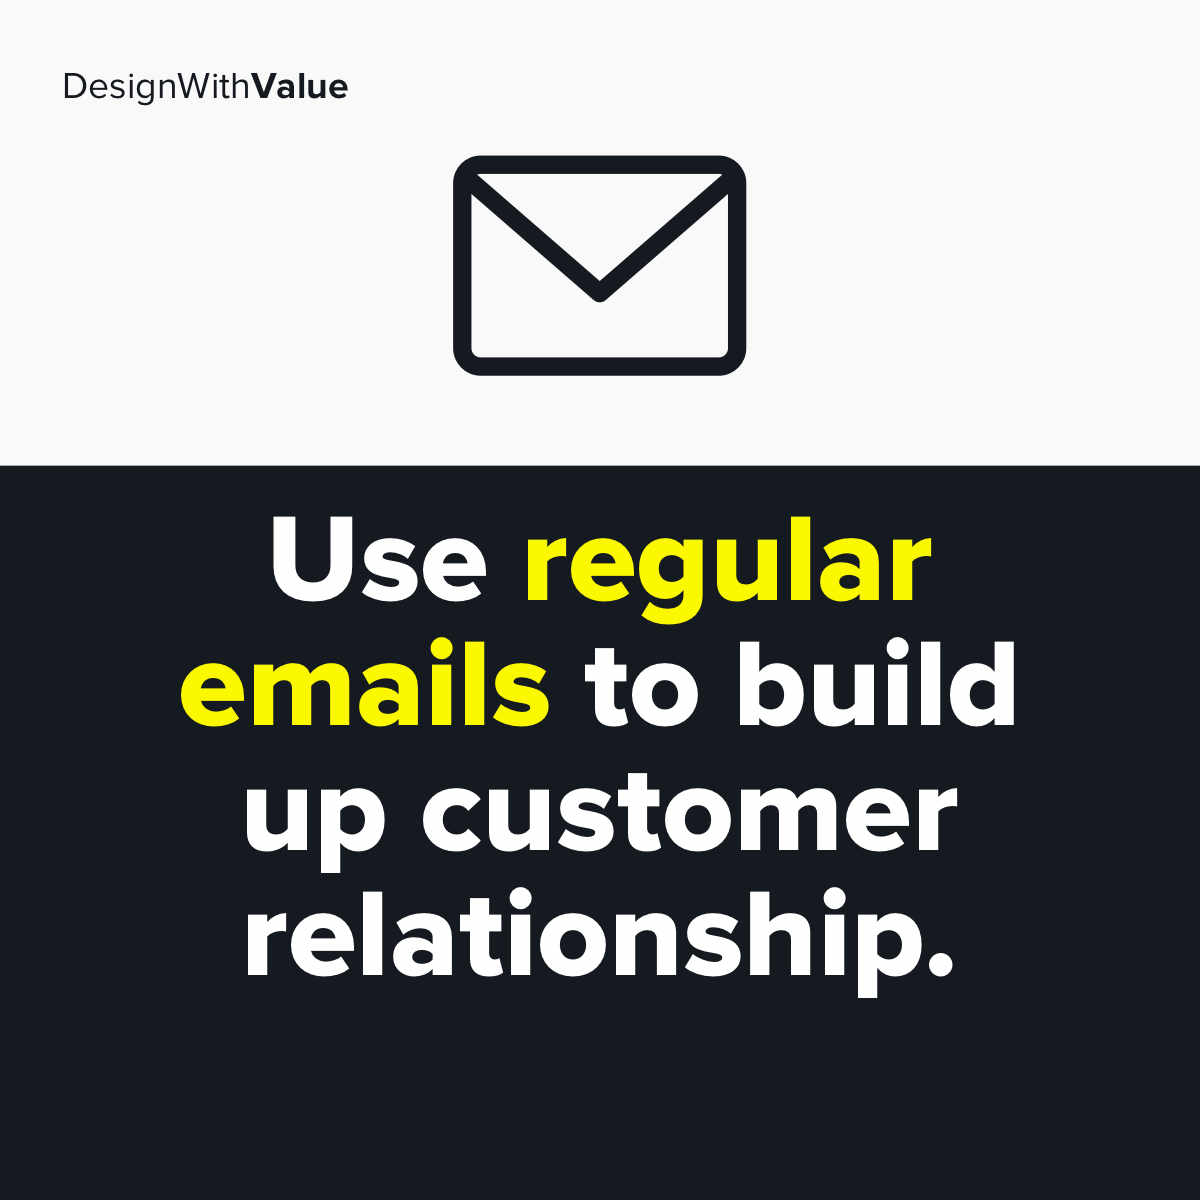 First use regular emails to build up customer relationship.